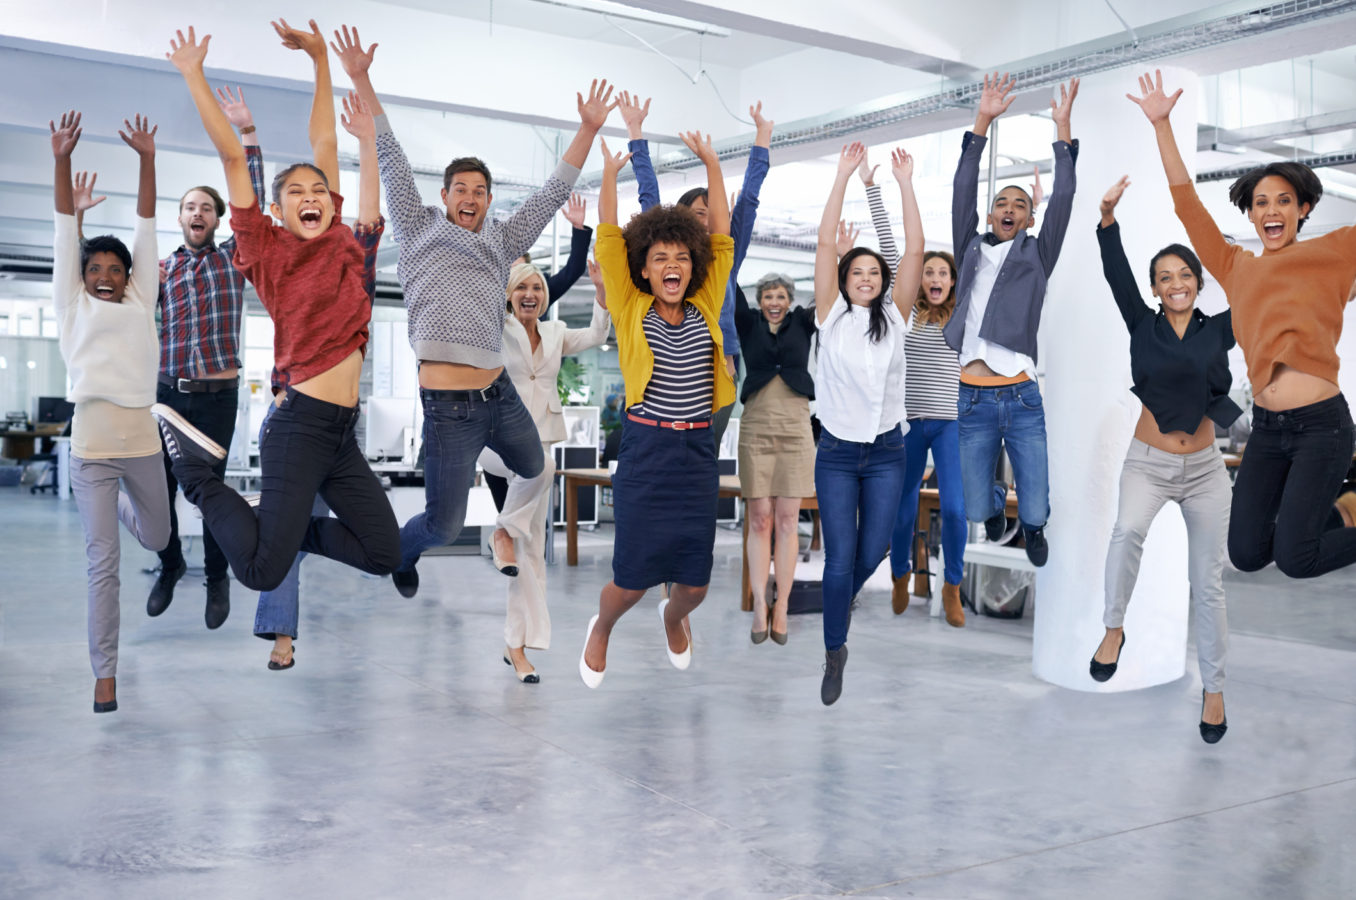 Your Top Tips on How to Boost Team Morale